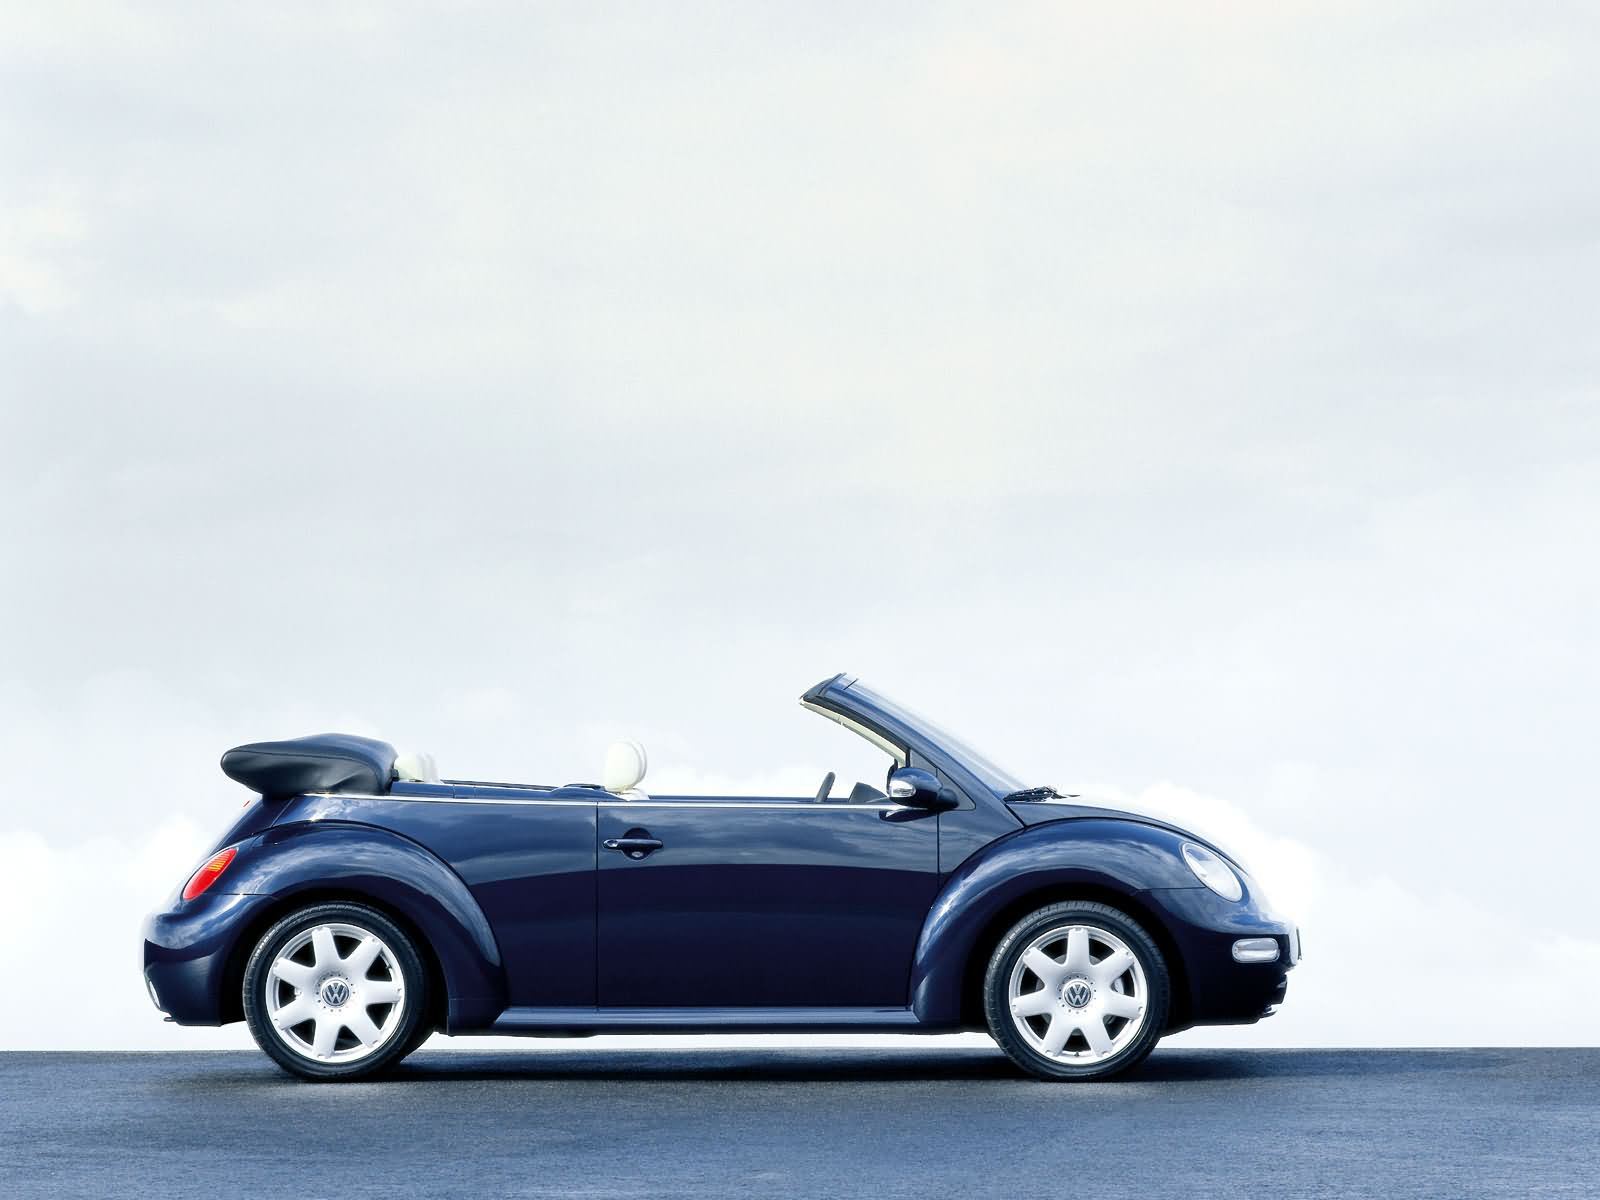 volkswagen new beetle cabriolet picture 17944 volkswagen photo gallery. Black Bedroom Furniture Sets. Home Design Ideas